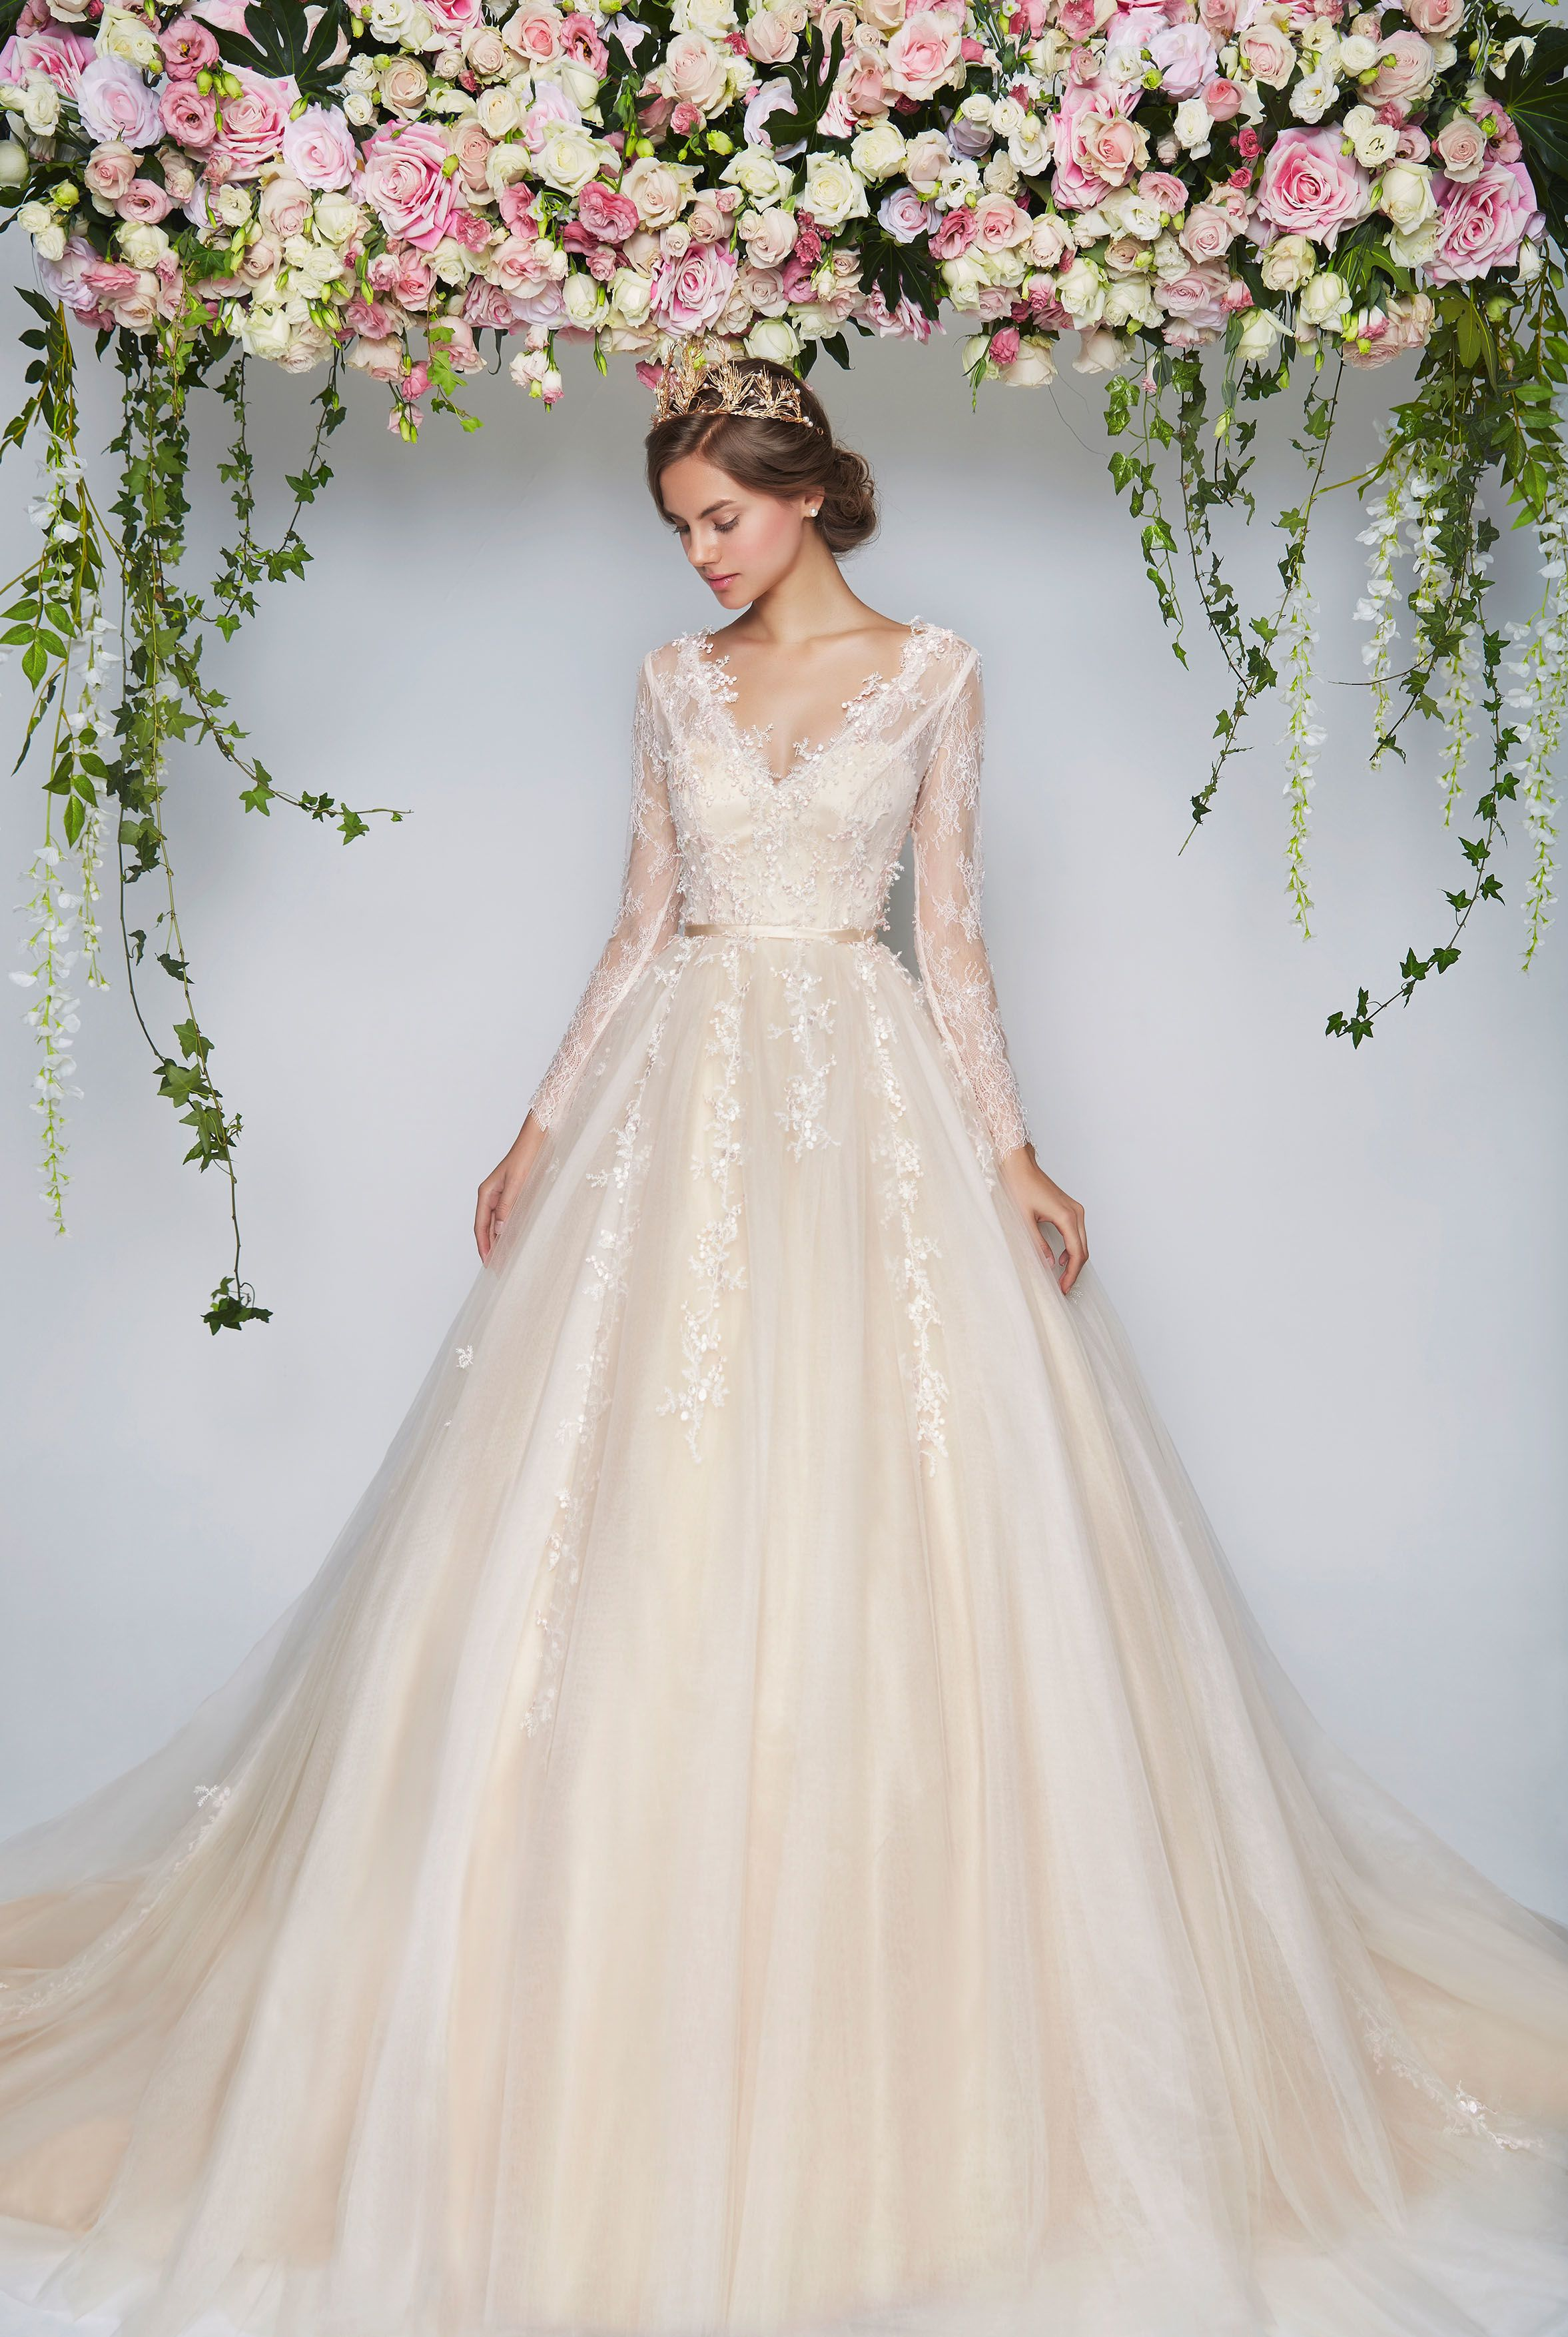 This is incredible unique work by ricoamona bridal